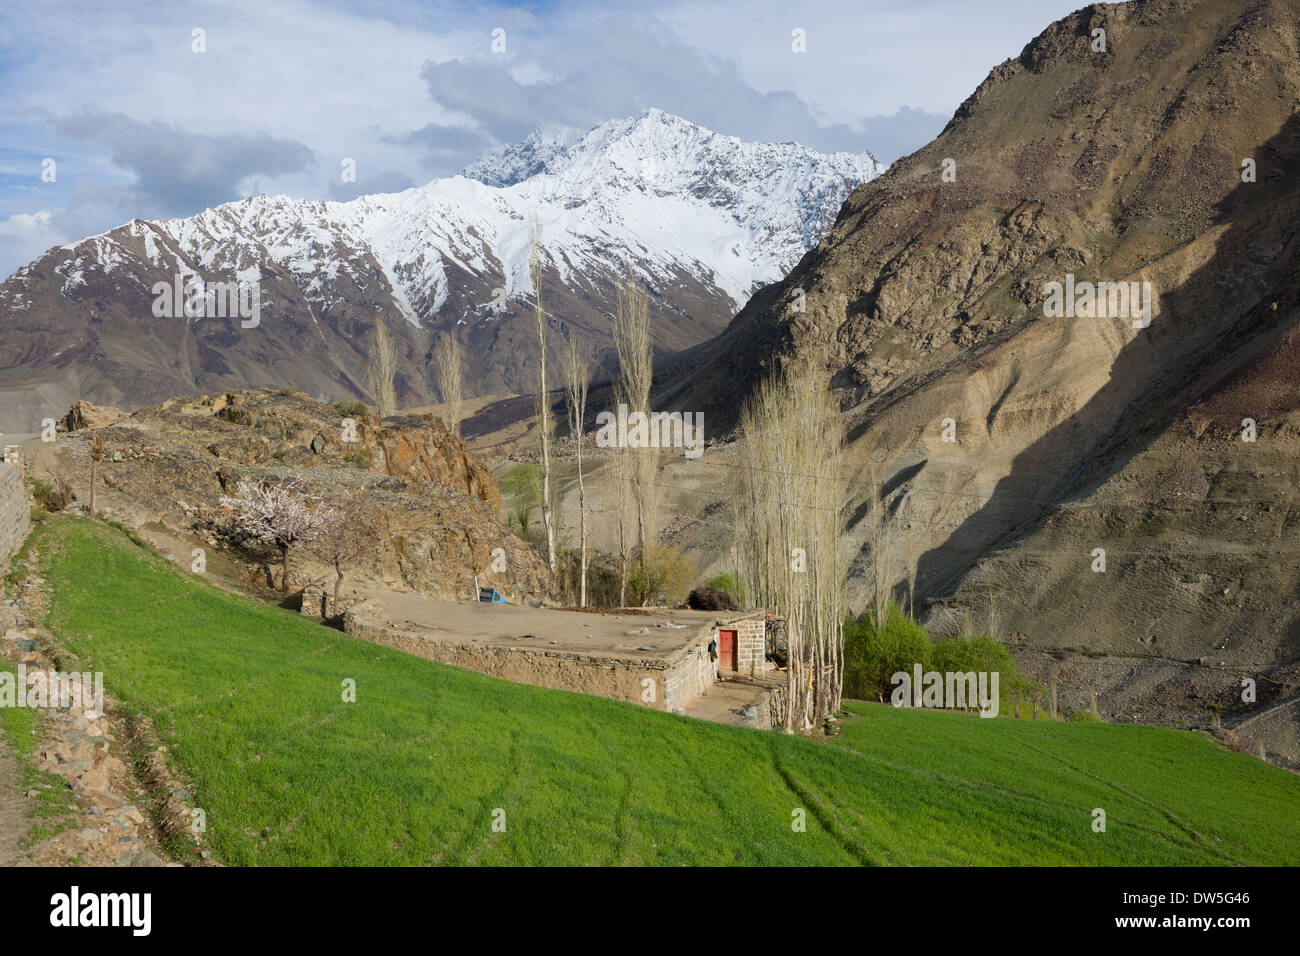 Small house on the outskirts of the village of Teru, in the Ghizar River (Gilgit River) Valley, seen from the Shandur-Gilgit Road, near the Shandur Pass, Gilgit-Baltistan, Pakistan - Stock Image